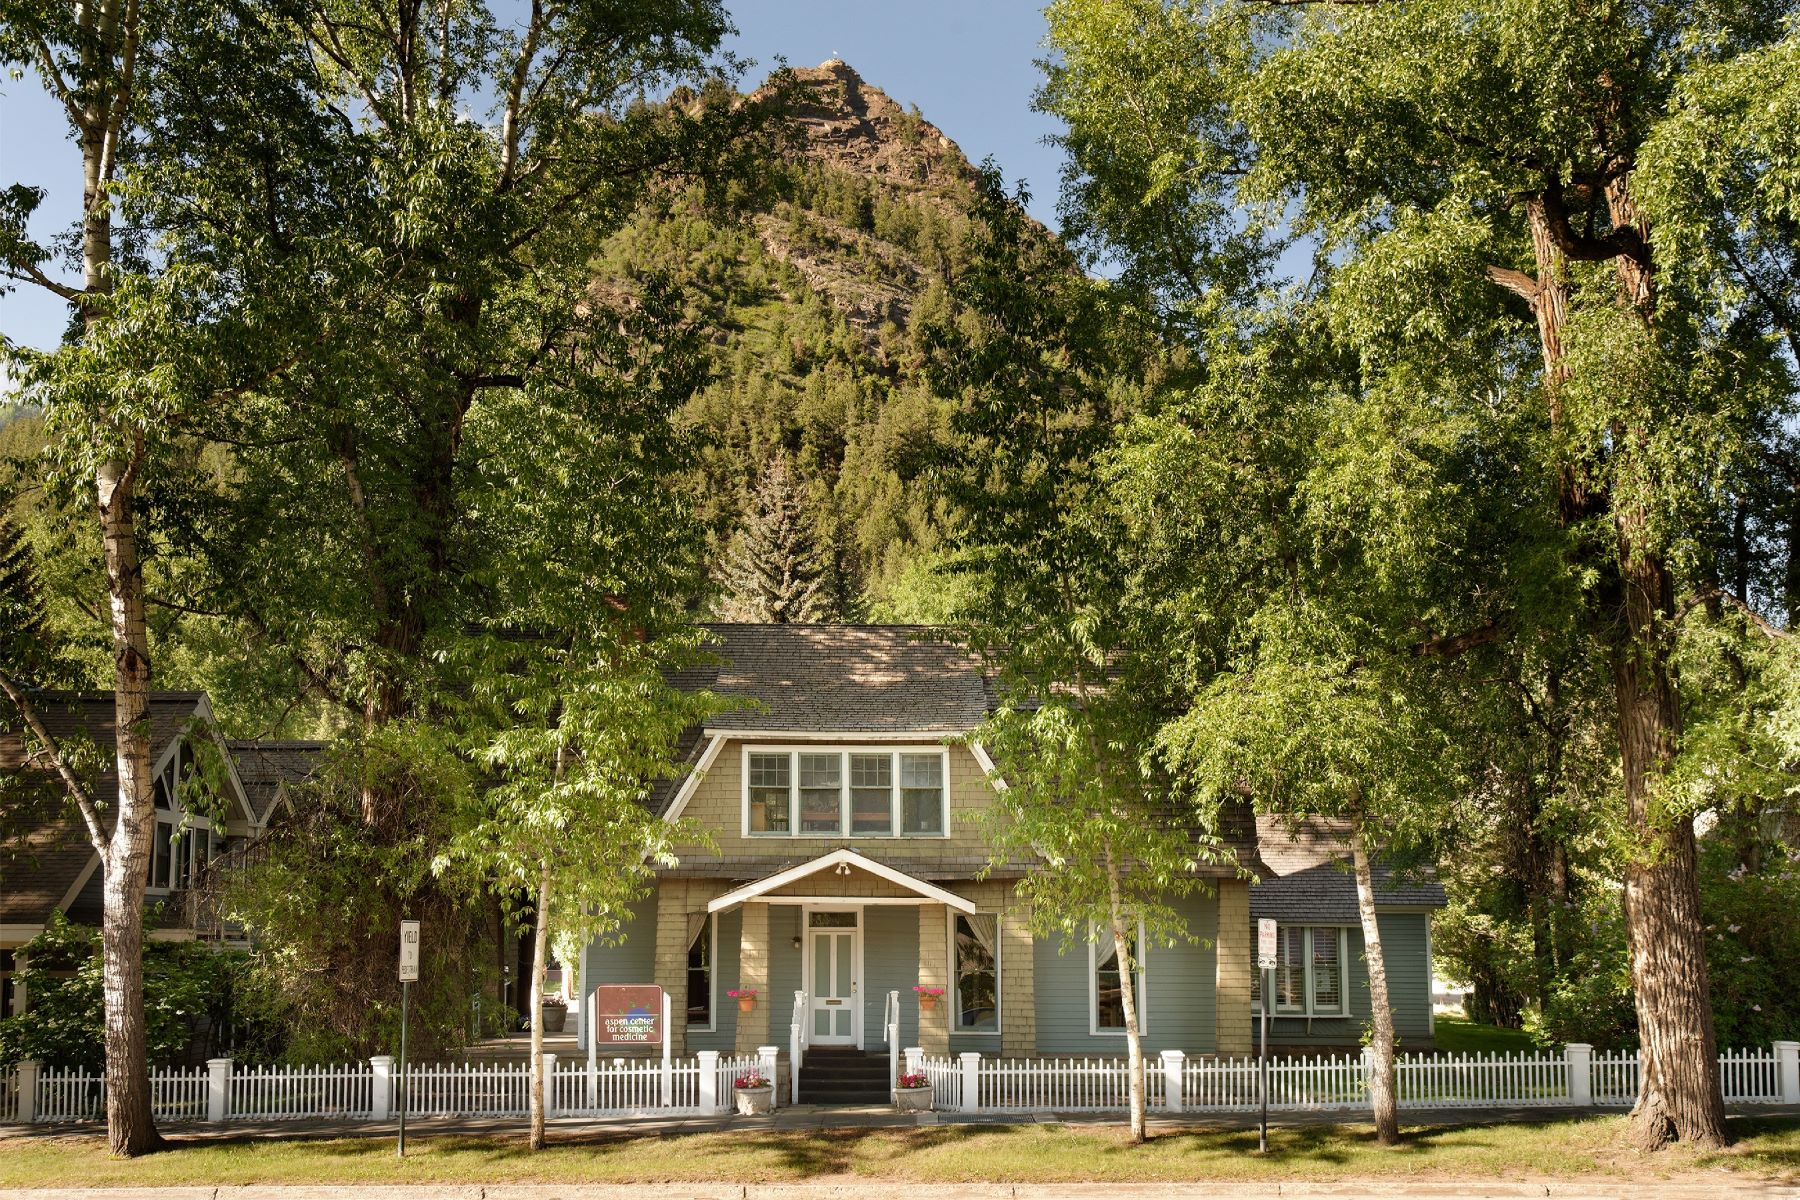 for Sale at Historic Main Street 611 W. Main Street Aspen, Colorado, 81611 United States